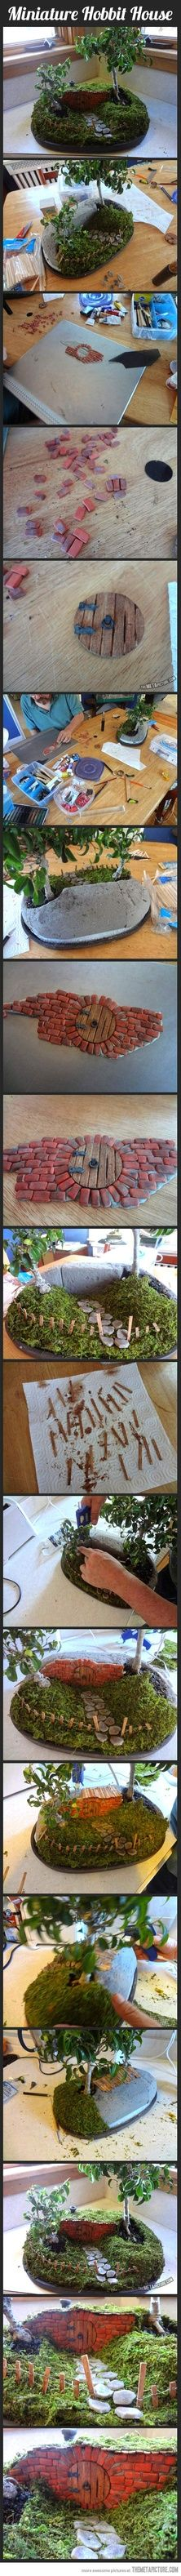 Tiny hobbit house! It would be cool to use real moss and a bonsai or something